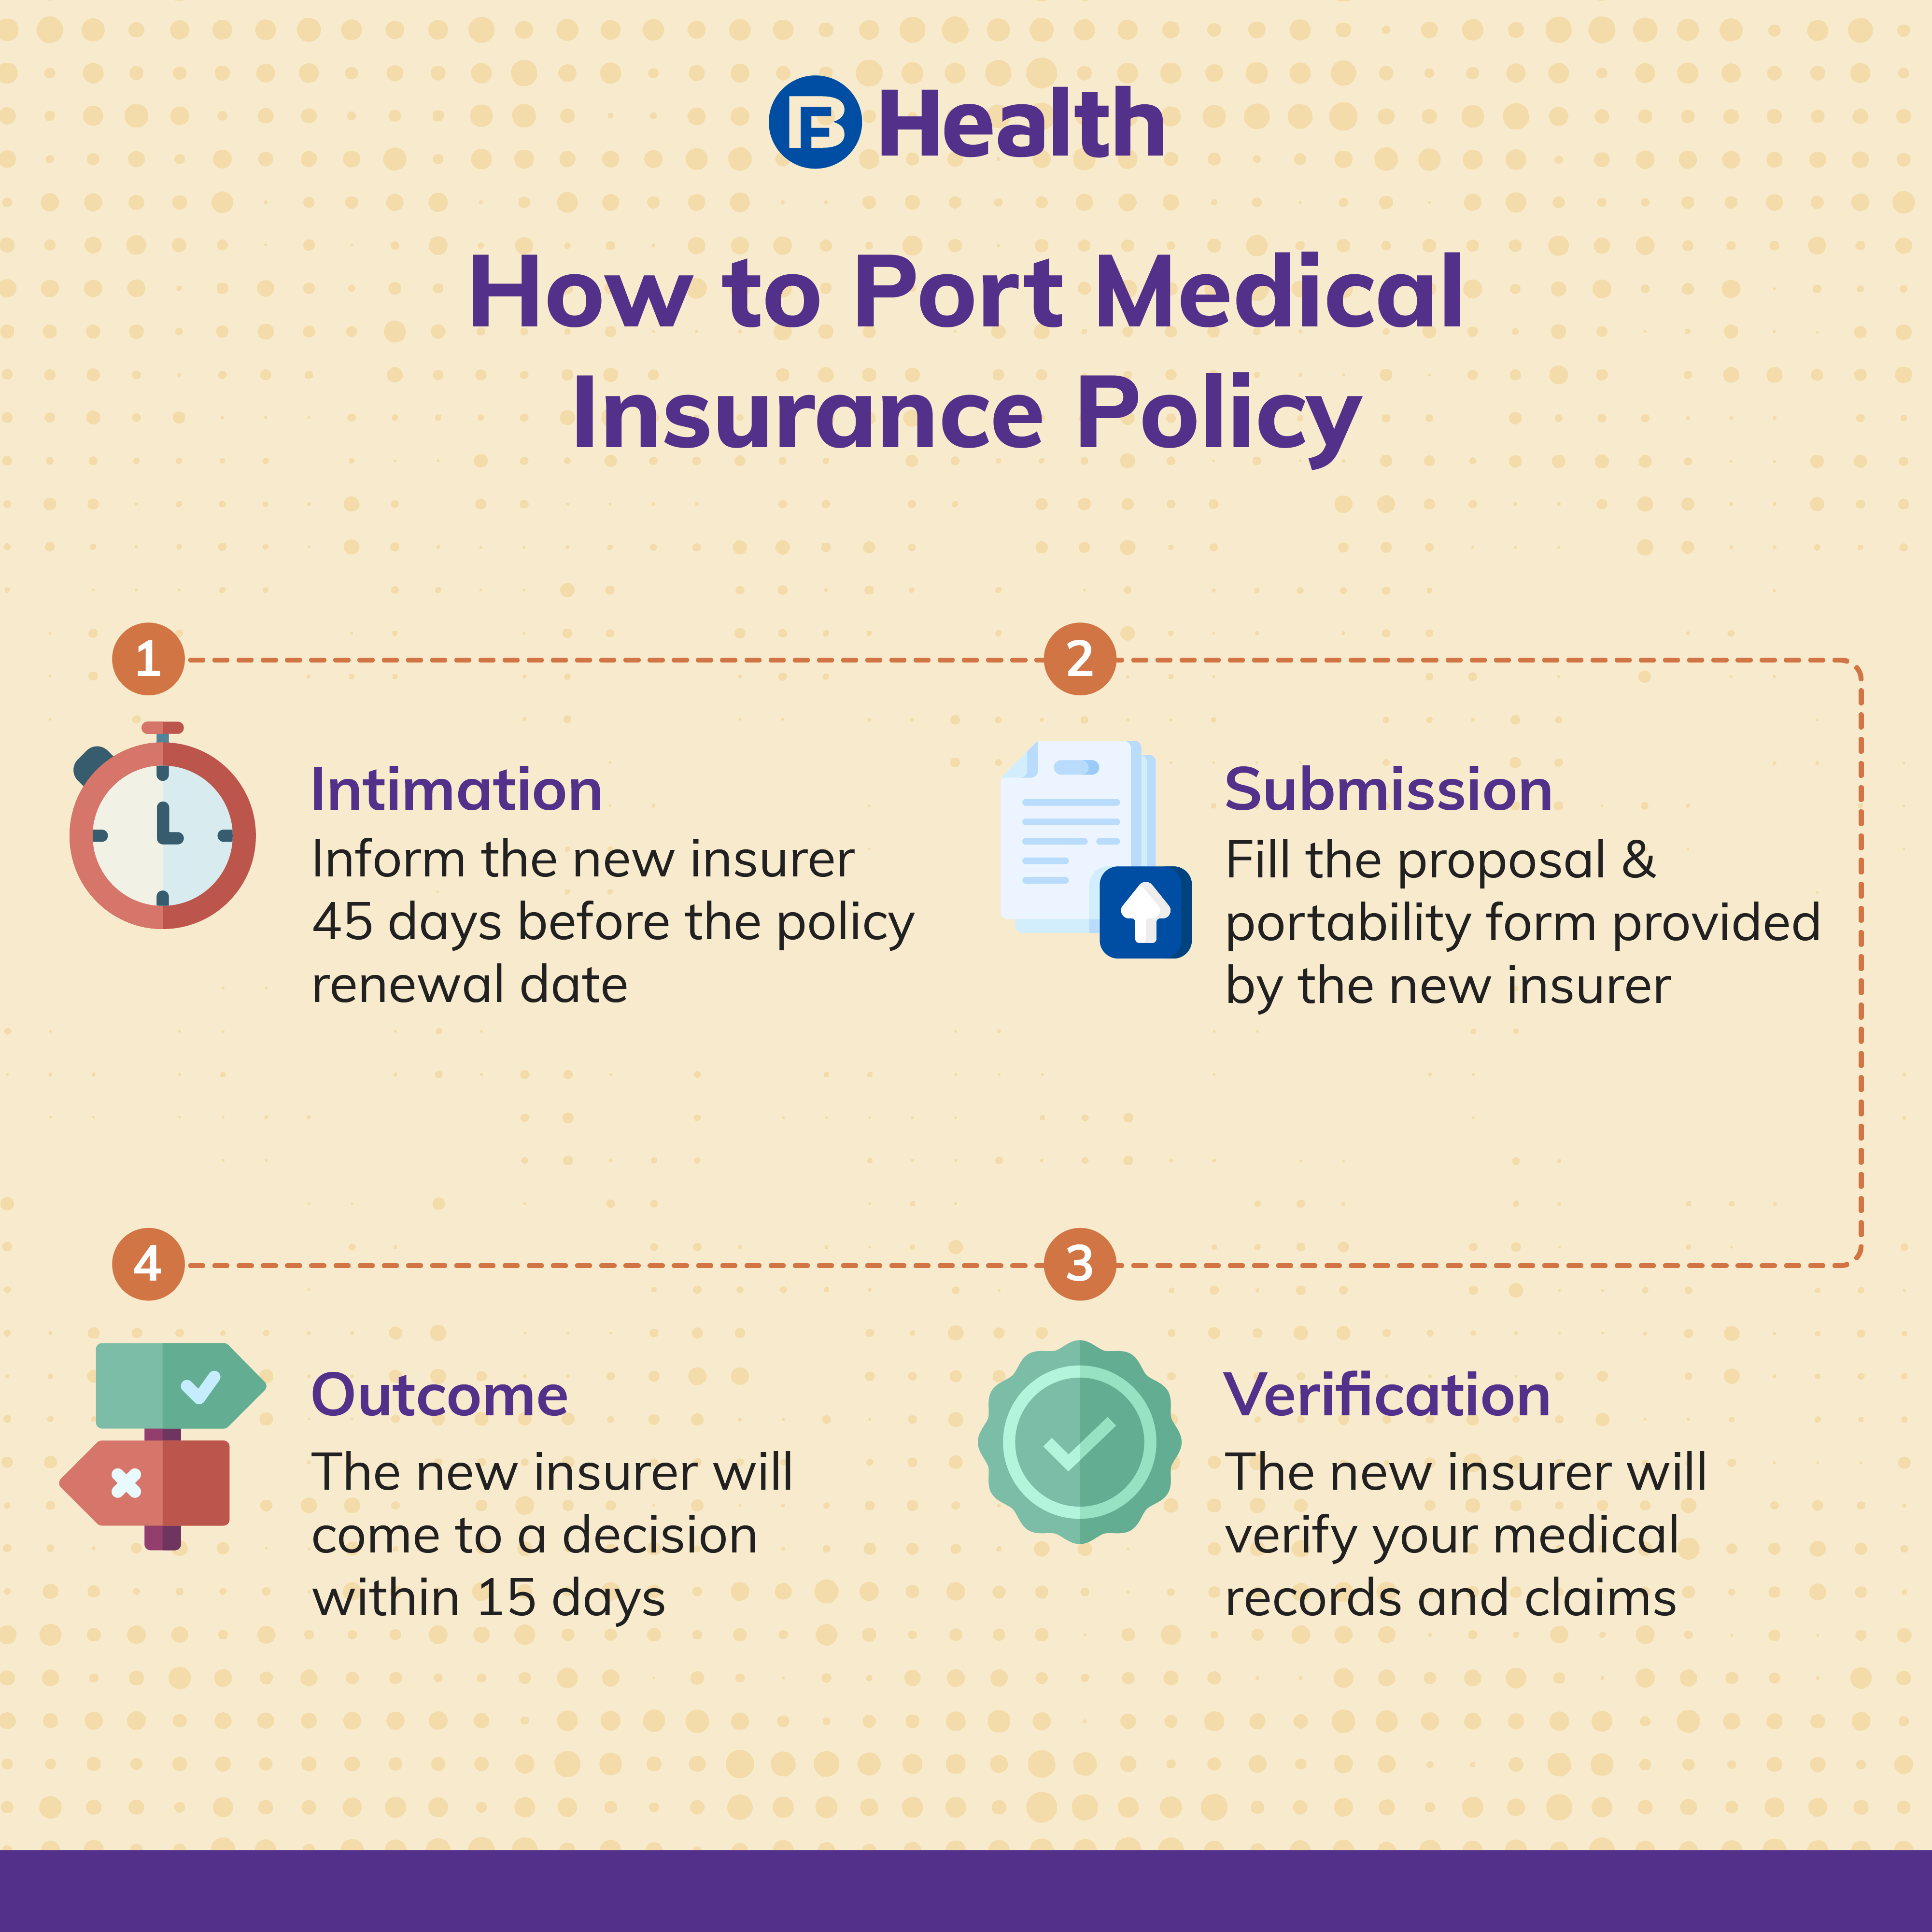 how to port medical insurance